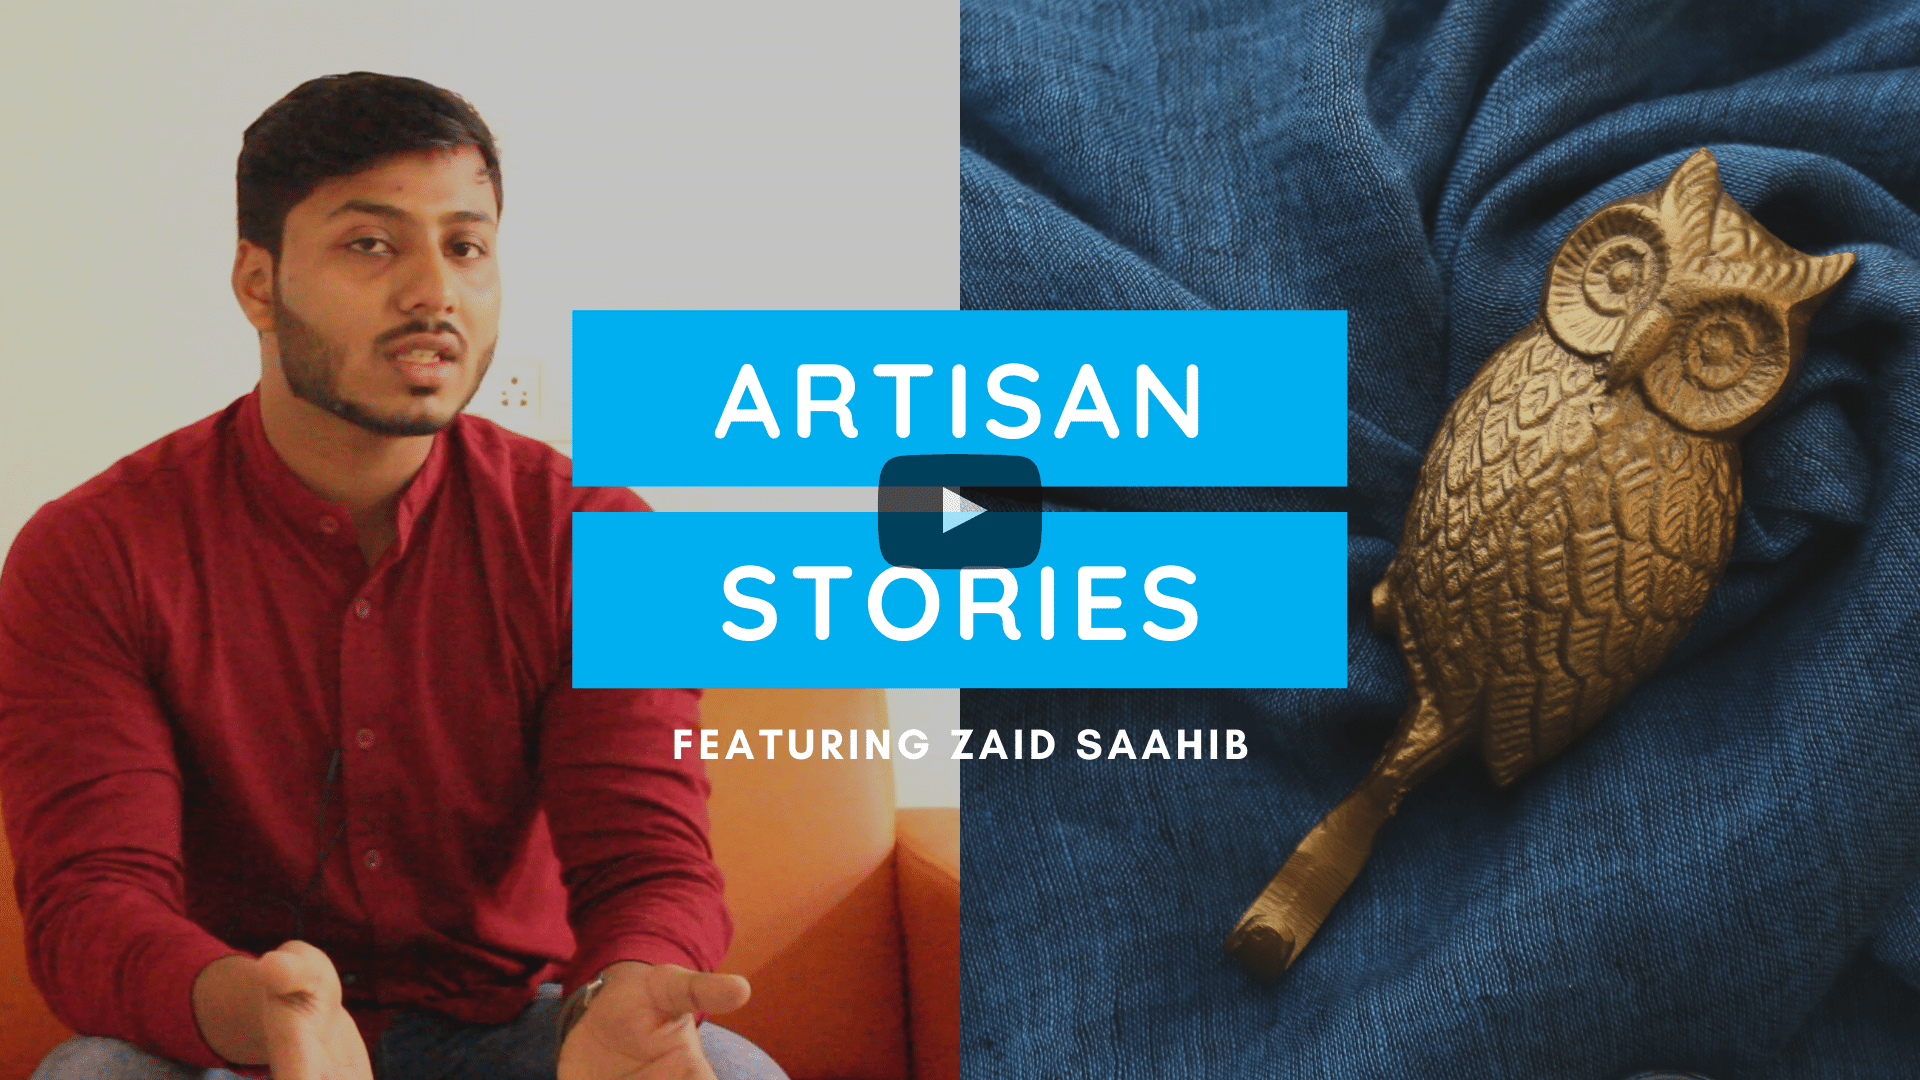 Artisan Stories by ExclusiveLane- Meet Zaid Sahib